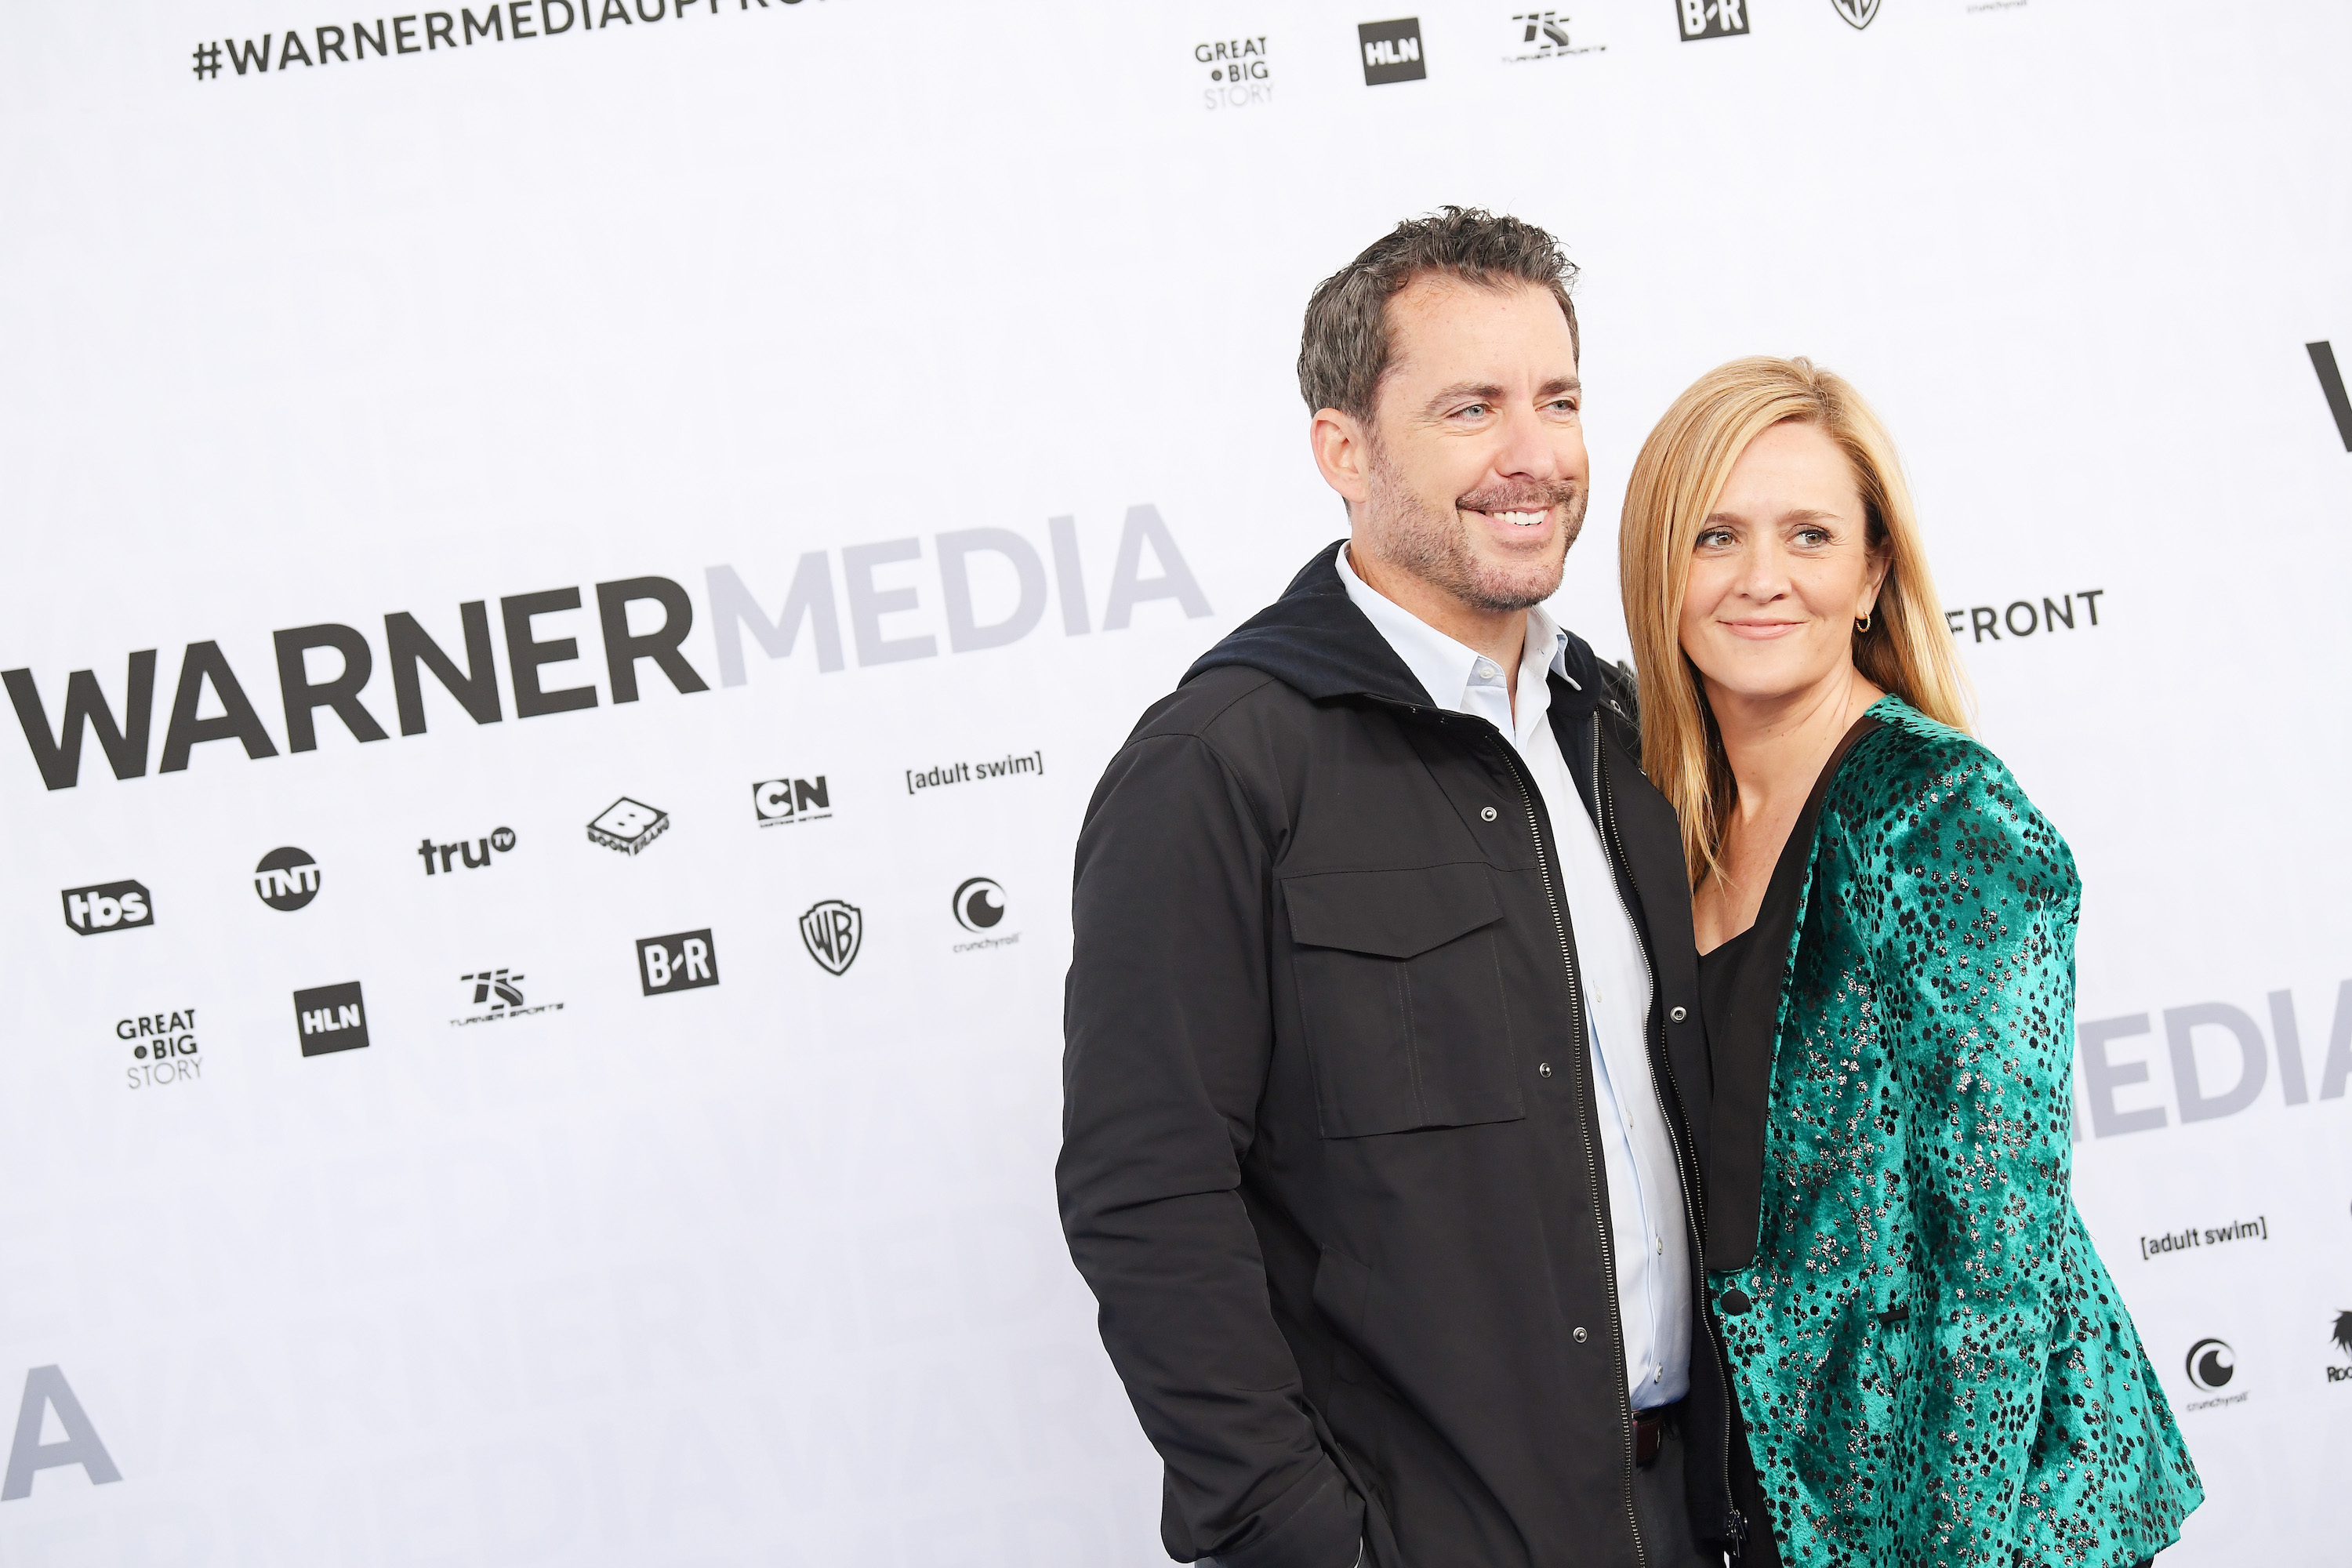 WarnerMedia at Upfront